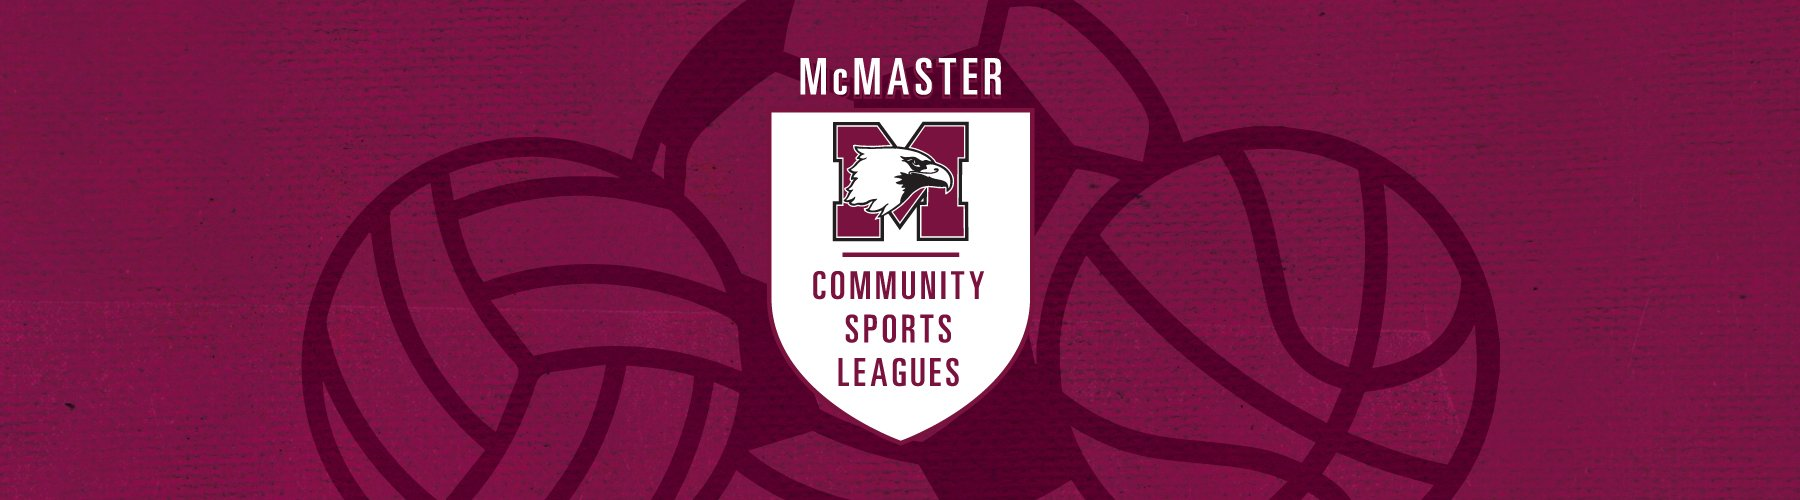 McMaster Community Sports Leagues